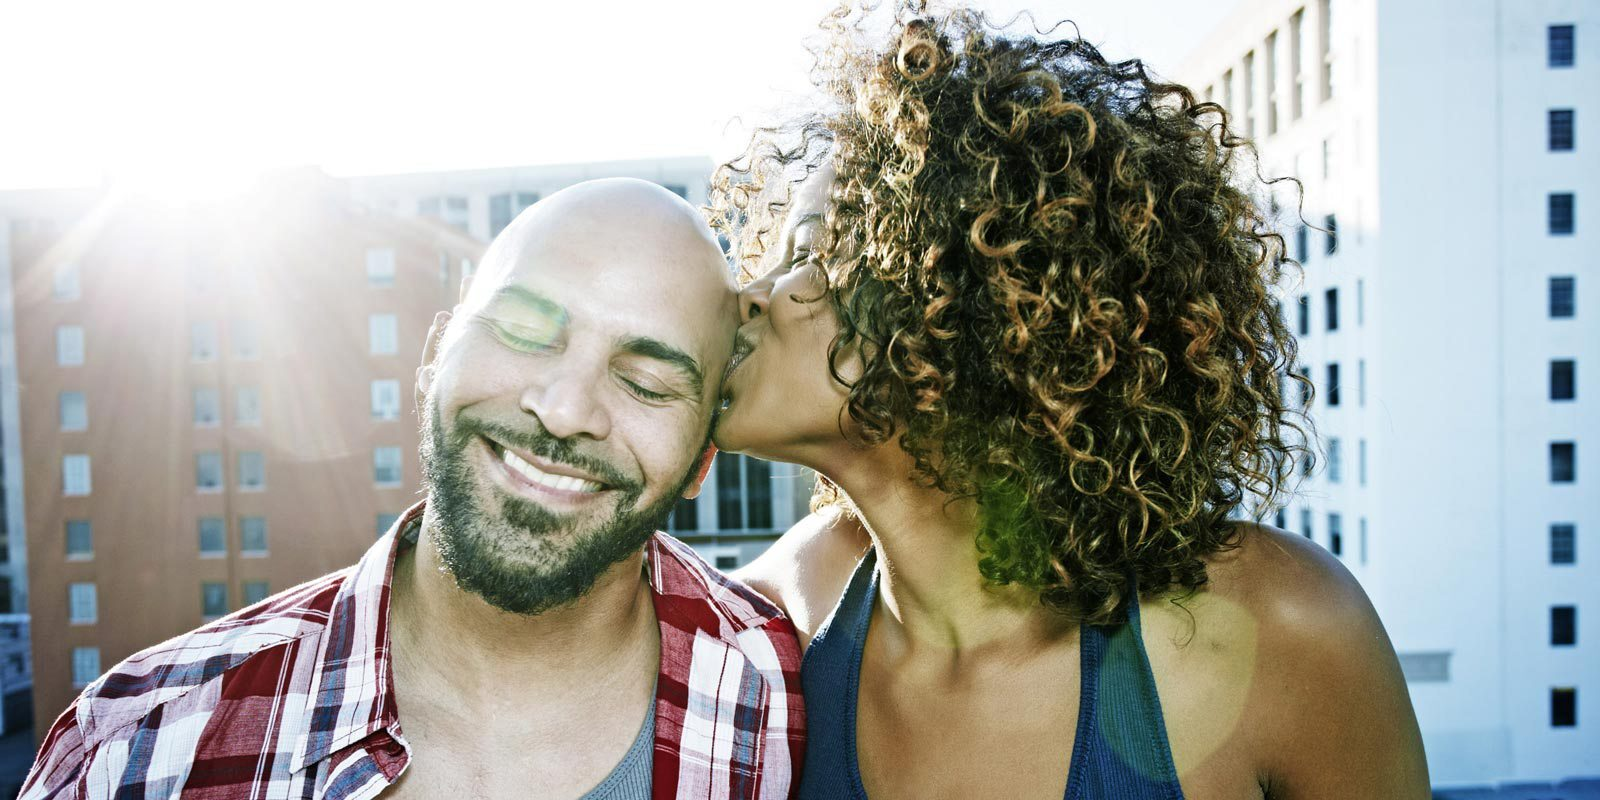 10 Sure Signs She's Truly In Love With You